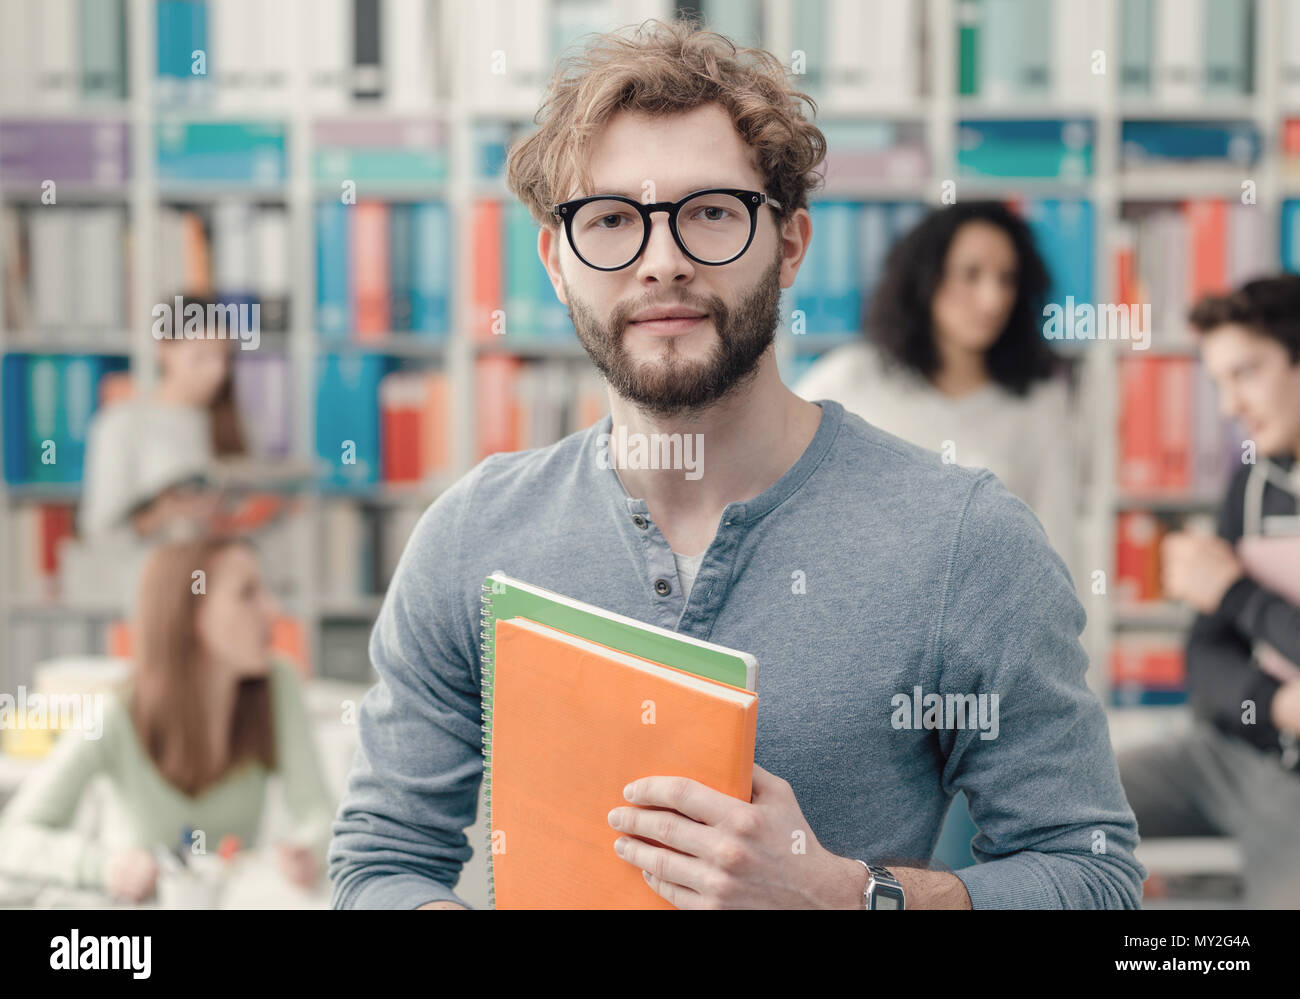 Hipster university student holding notebooks and smiling, students on the background - Stock Image